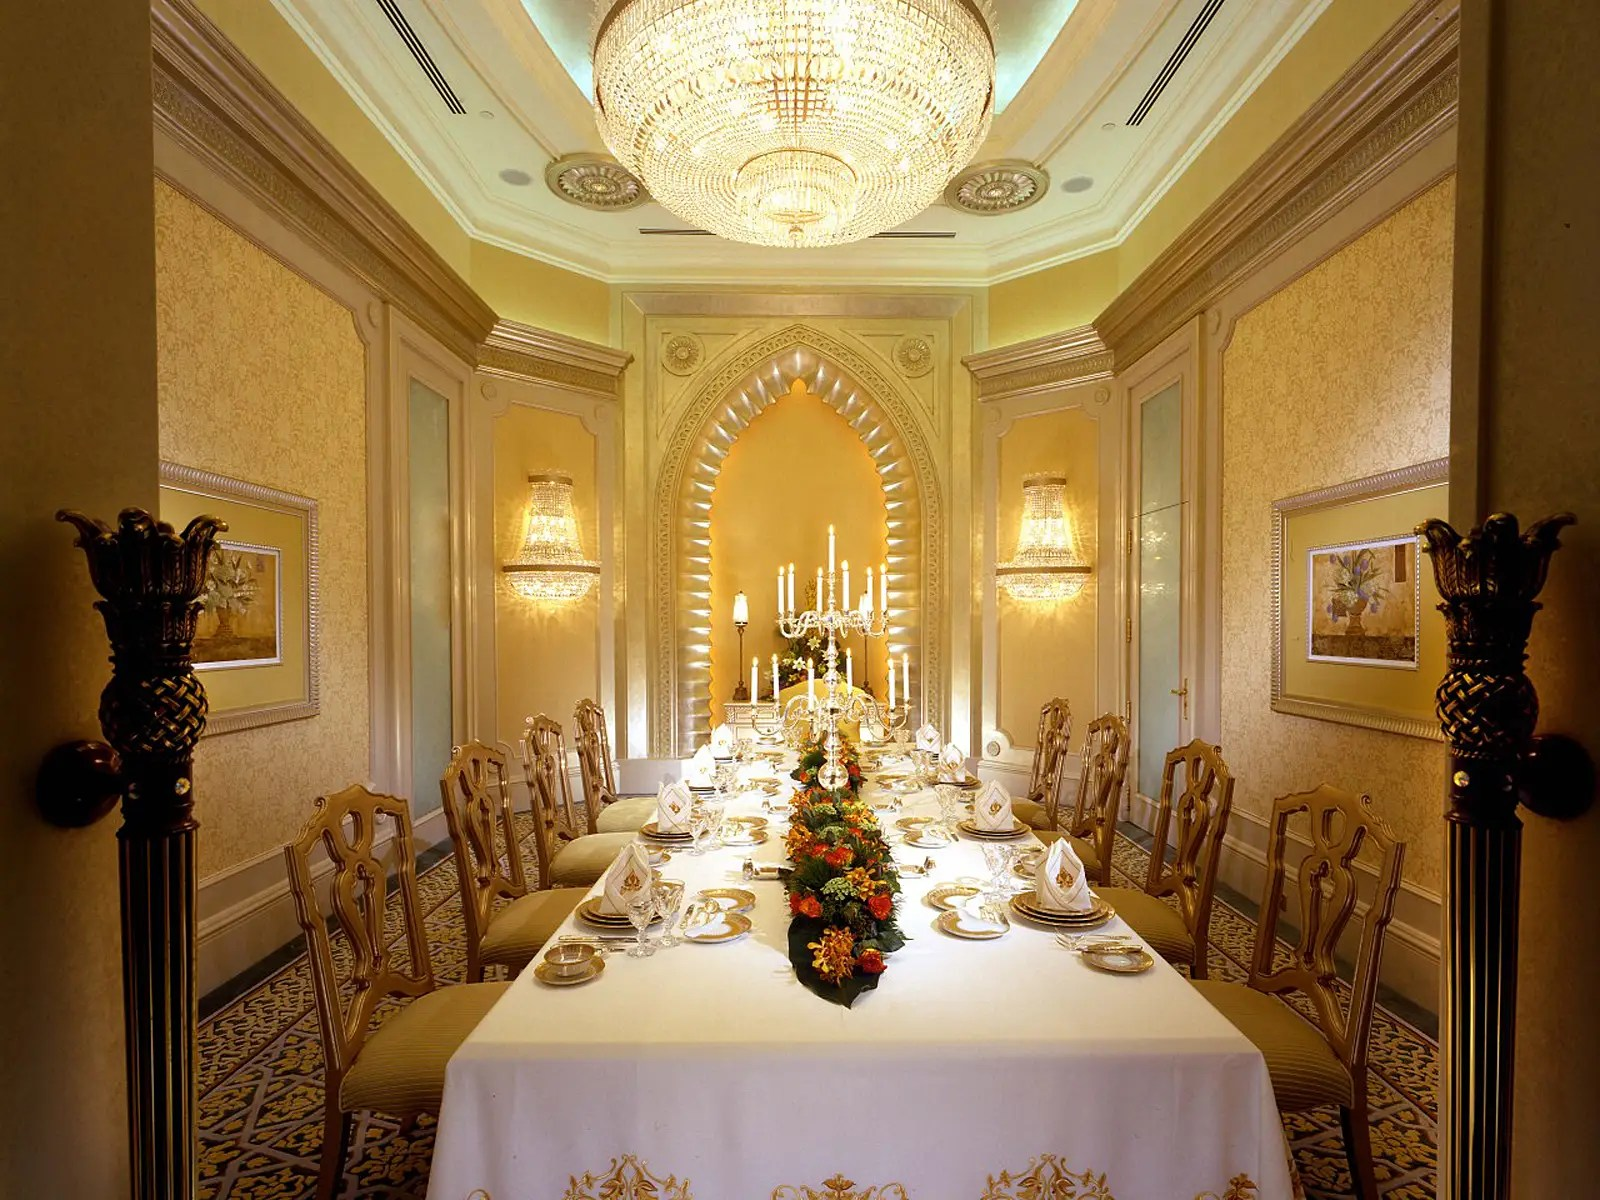 Or why not have your meal catered by award winning chefs in your personal dining room, complete with servers, seating for eight, and a luxe chandelier?